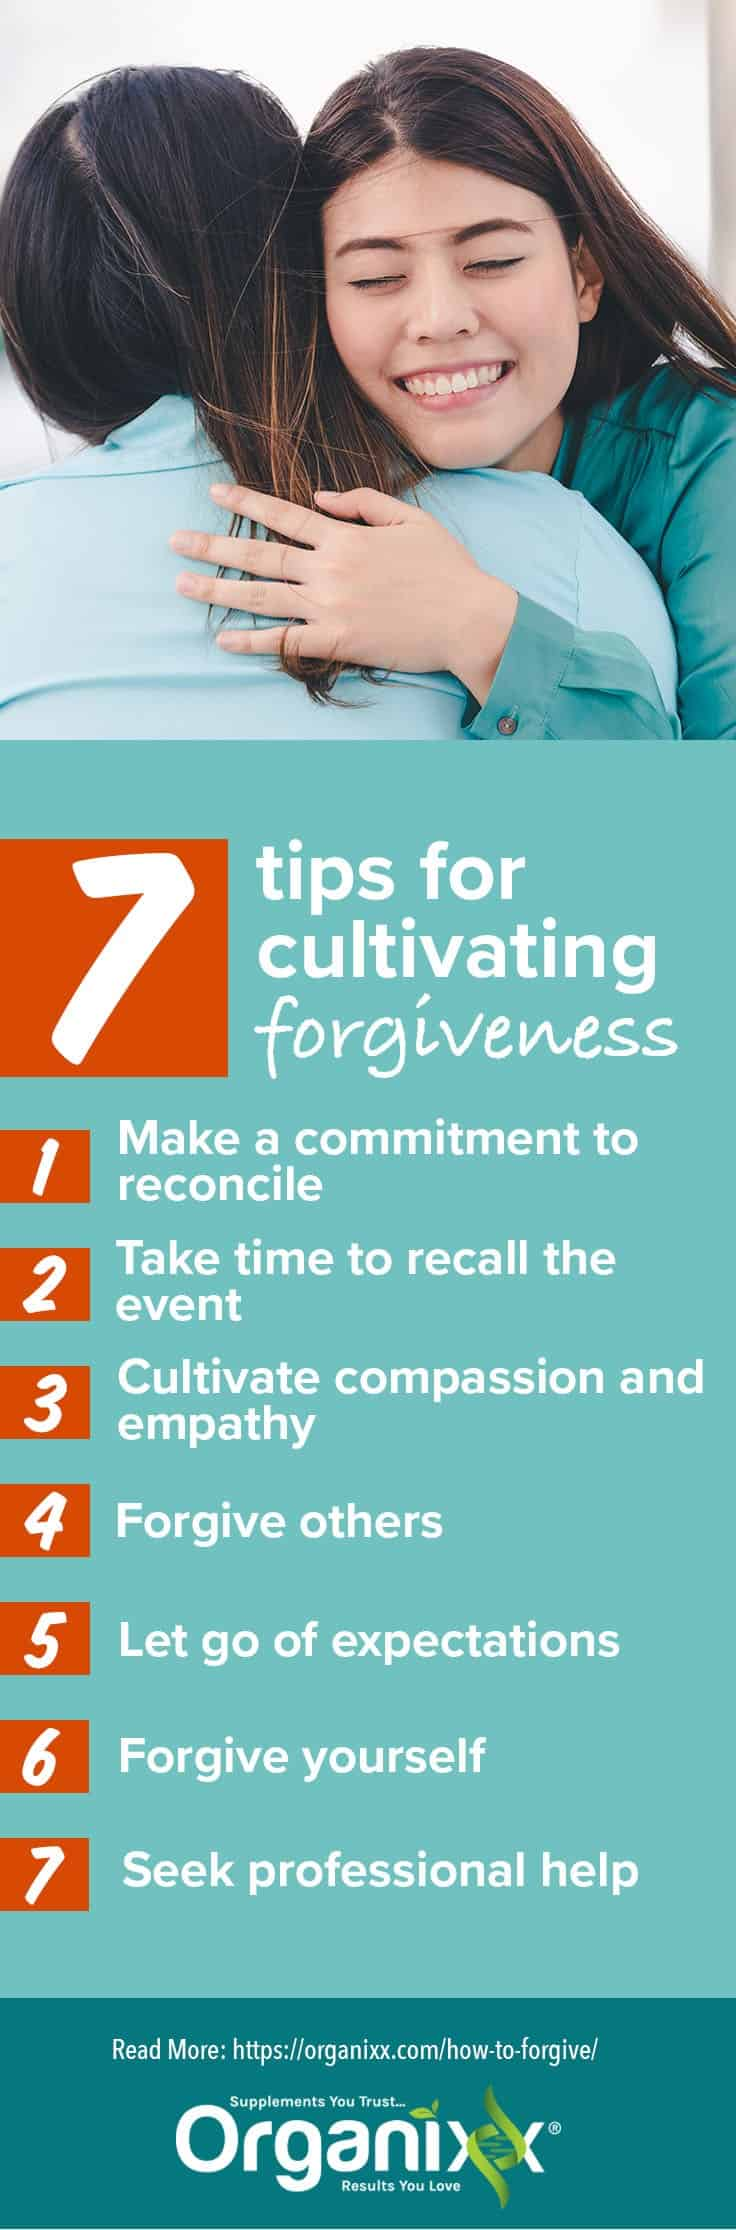 cultivating forgiveness infographic